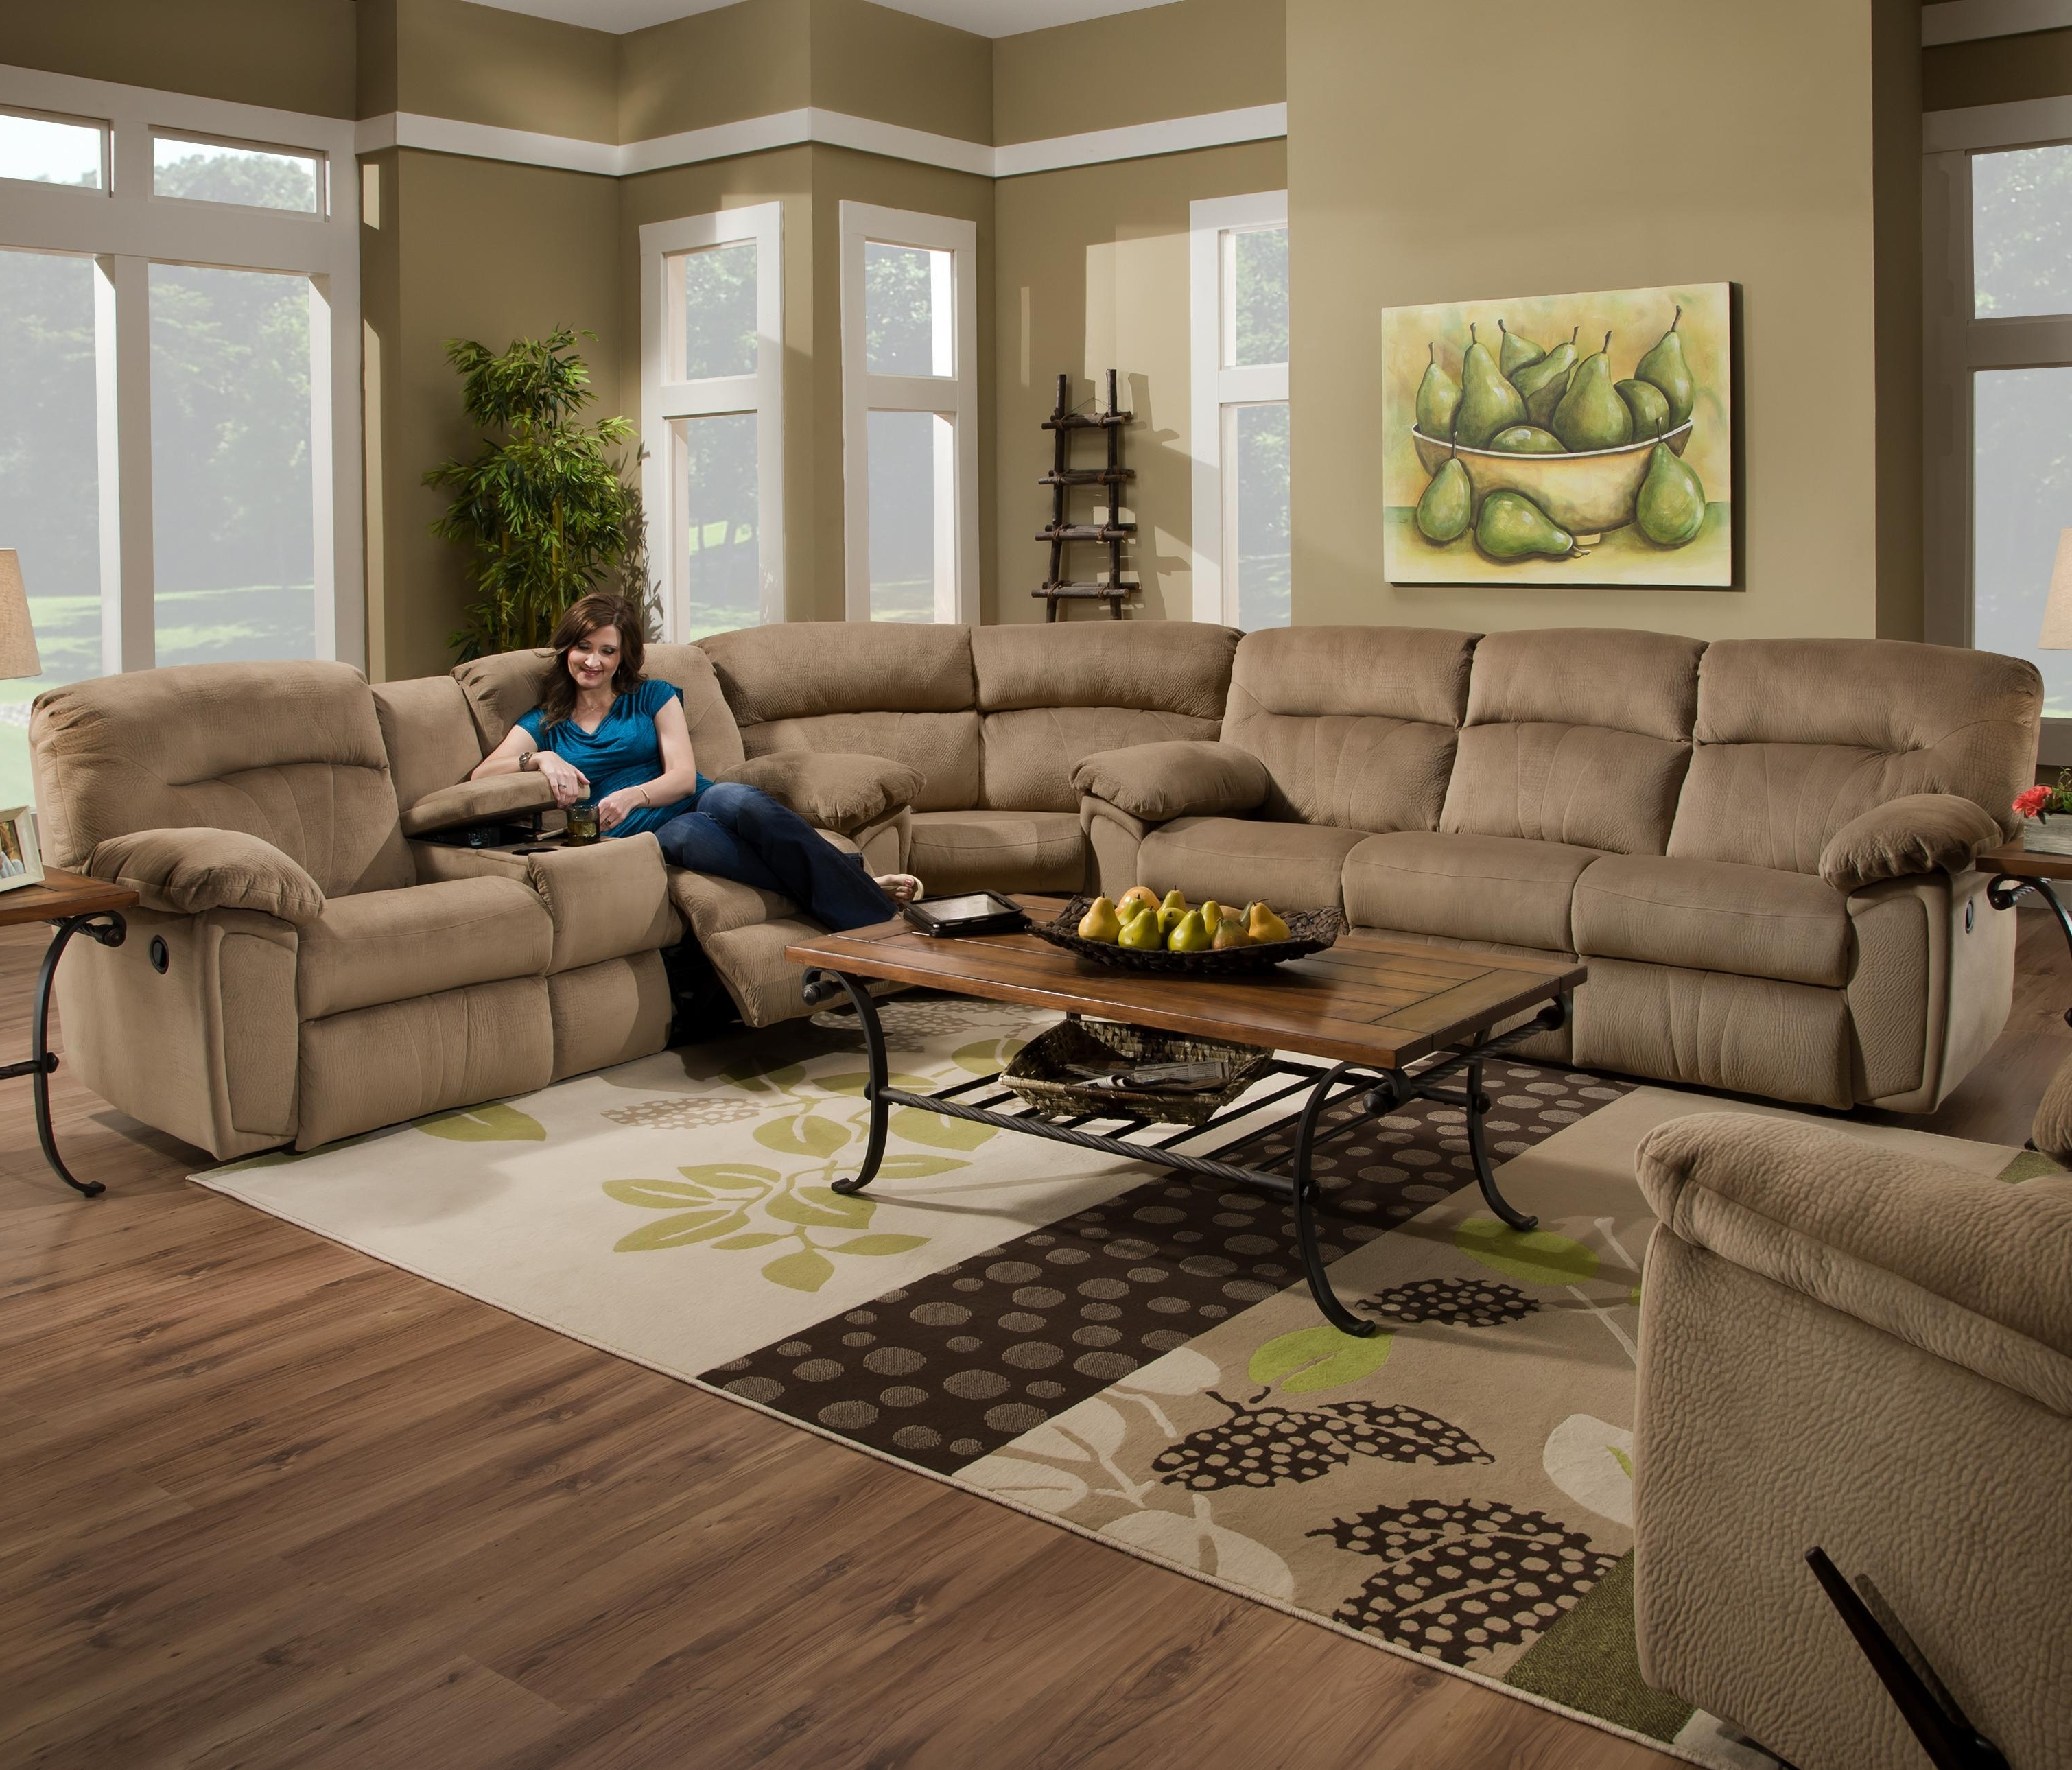 Most Popular Sectional Sofas With Cup Holders With Regard To Cool Sectional Sofas With Cup Holders 11 On Sectional Sofa Beds (View 5 of 20)